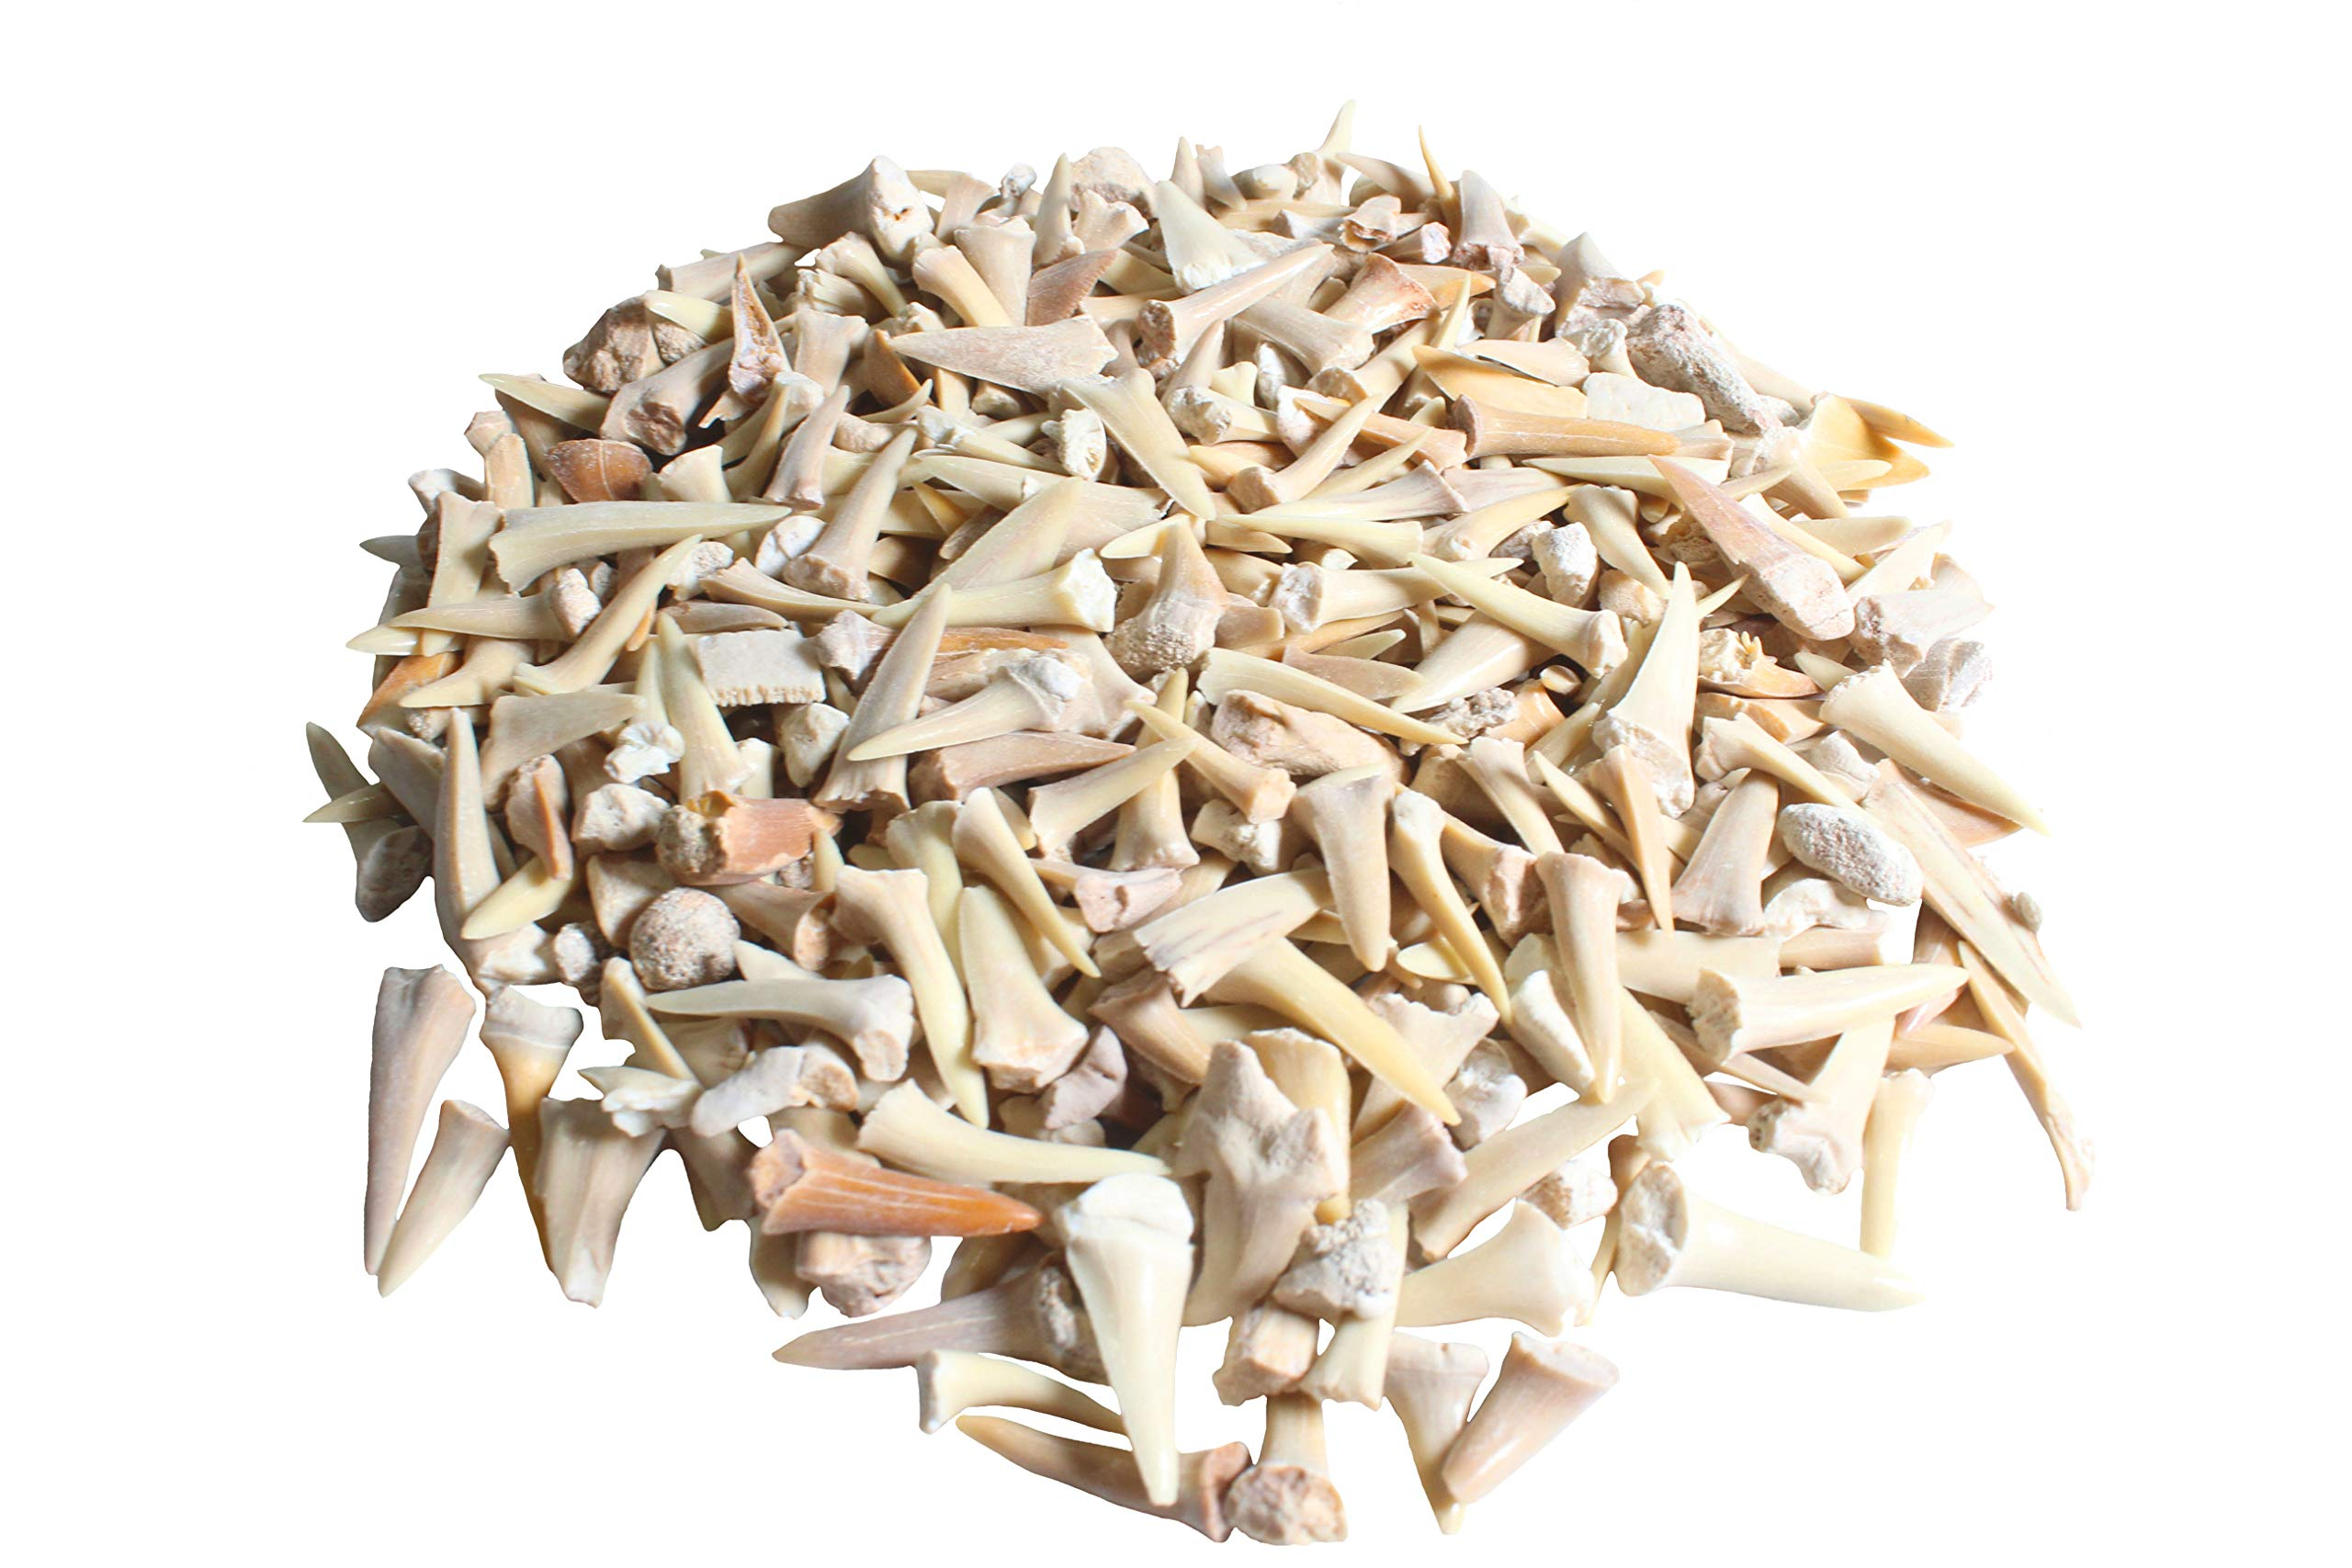 Real Authentic Shark Tooth Collection SHARK TEETH Fossils Grade A 50-60 Million Years old Paleocene Period FREE BONUS: Fossil Book /& ID Card B /& C Mix Genuine Moroccan Bulk Wholesale 1 Pound